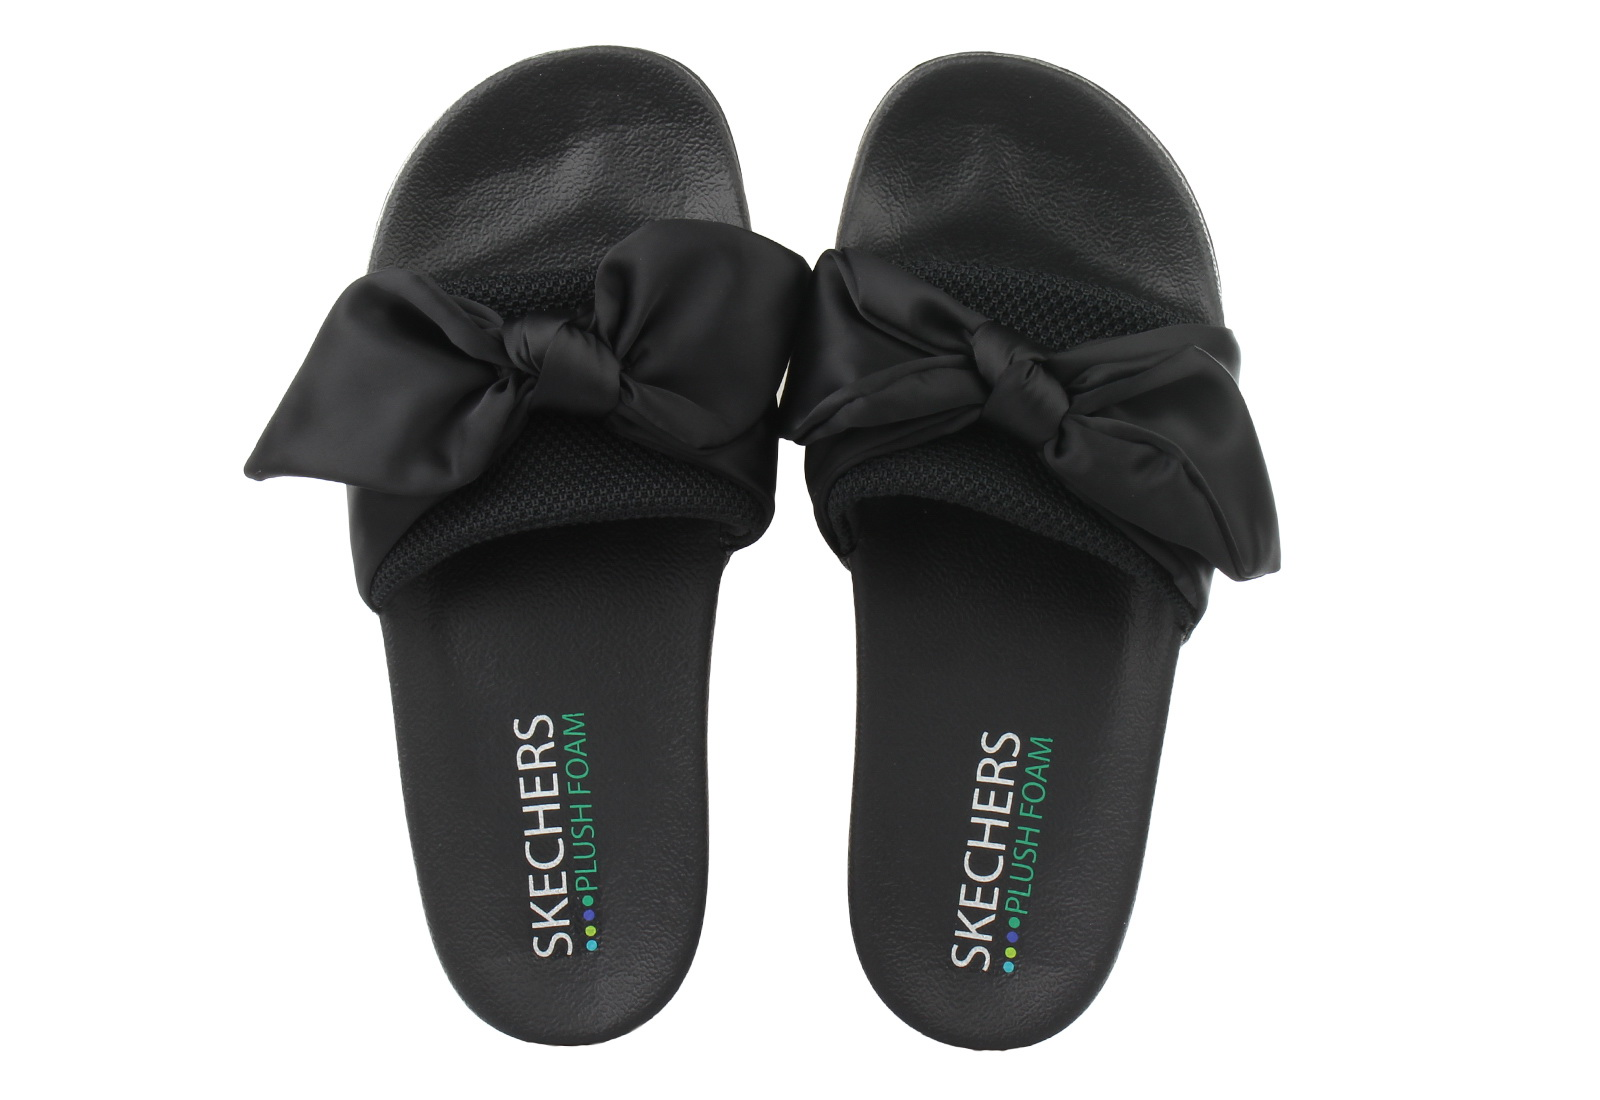 Skechers Papucs Pop Ups - Lovely Bow